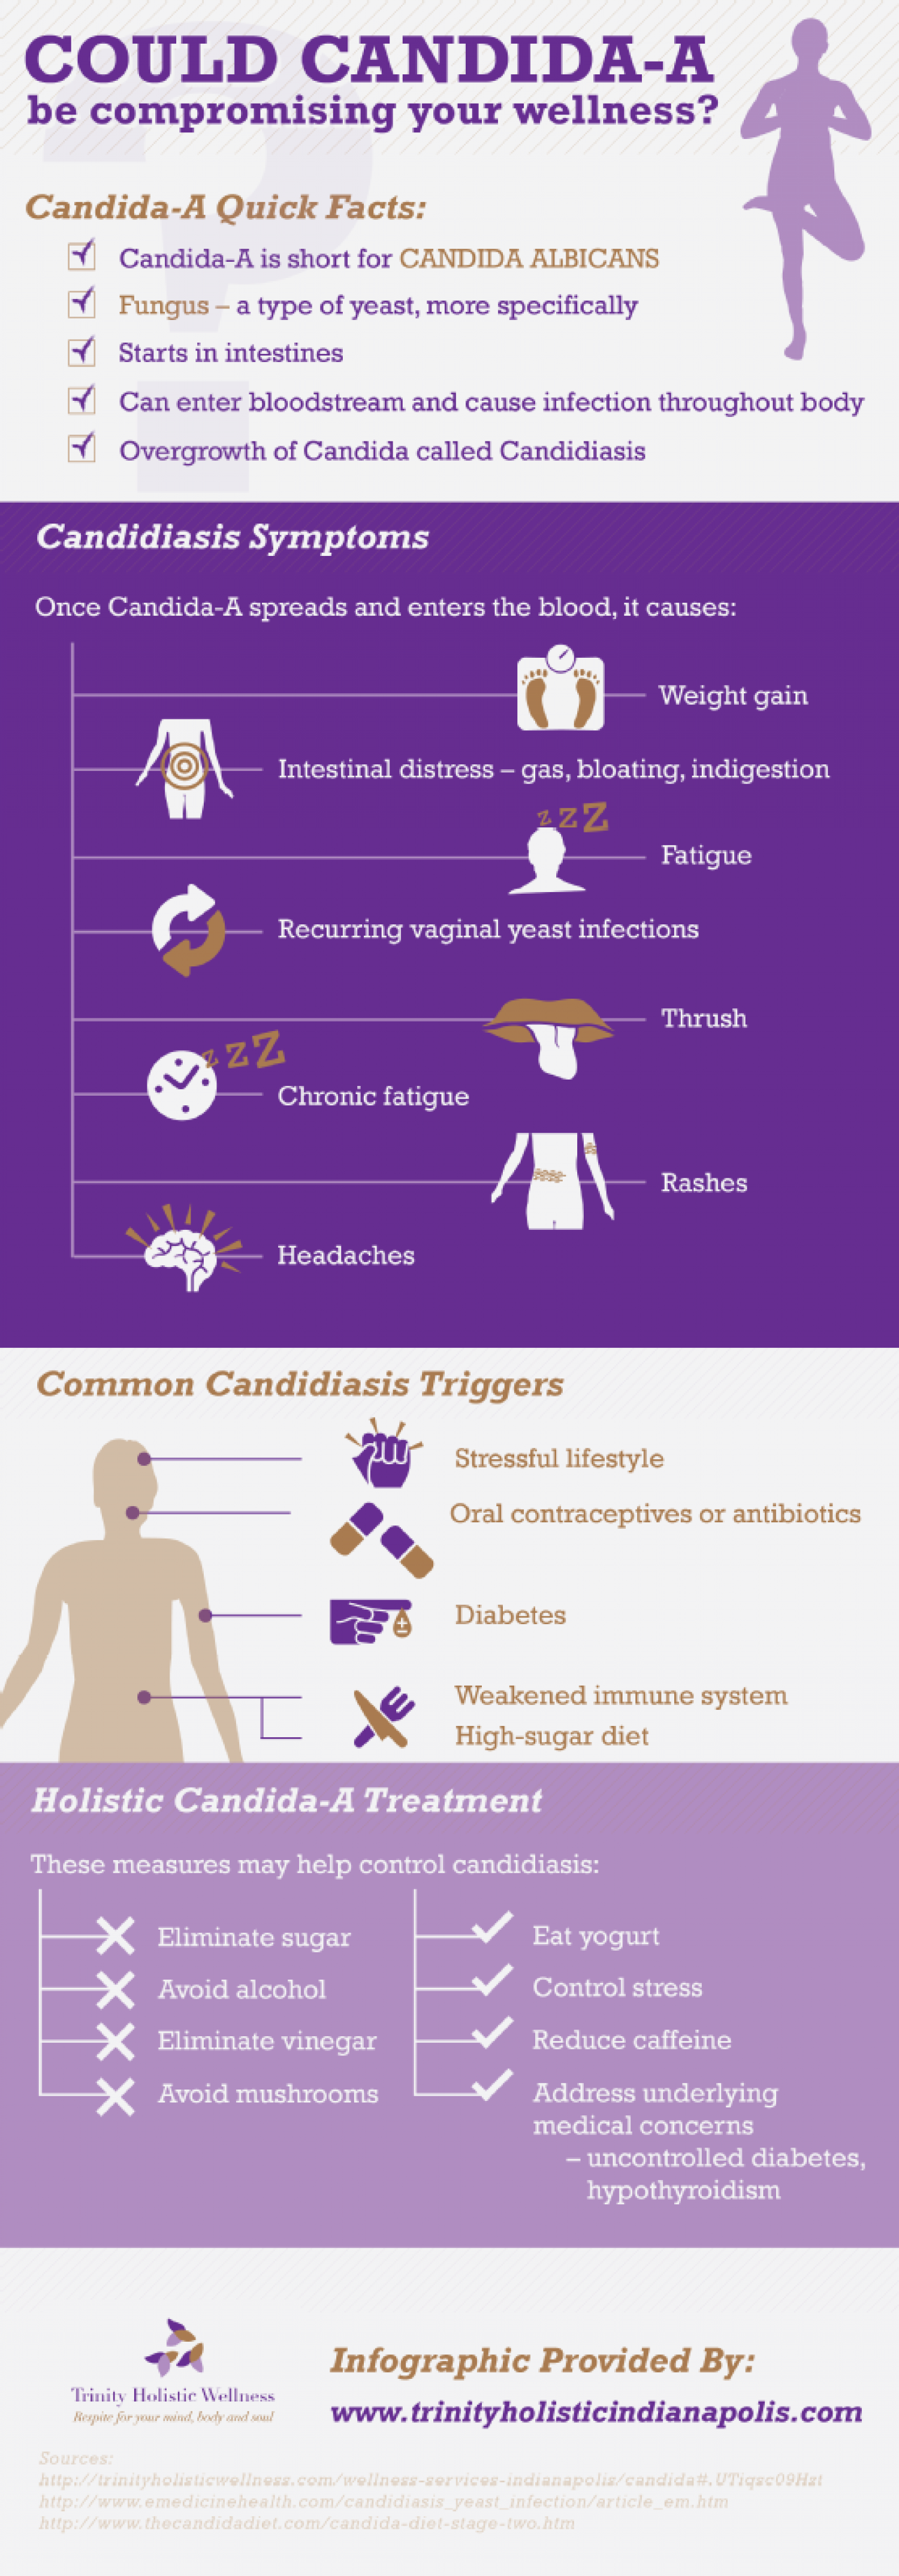 Could Candida-A Be Compromising Your Wellness? Infographic